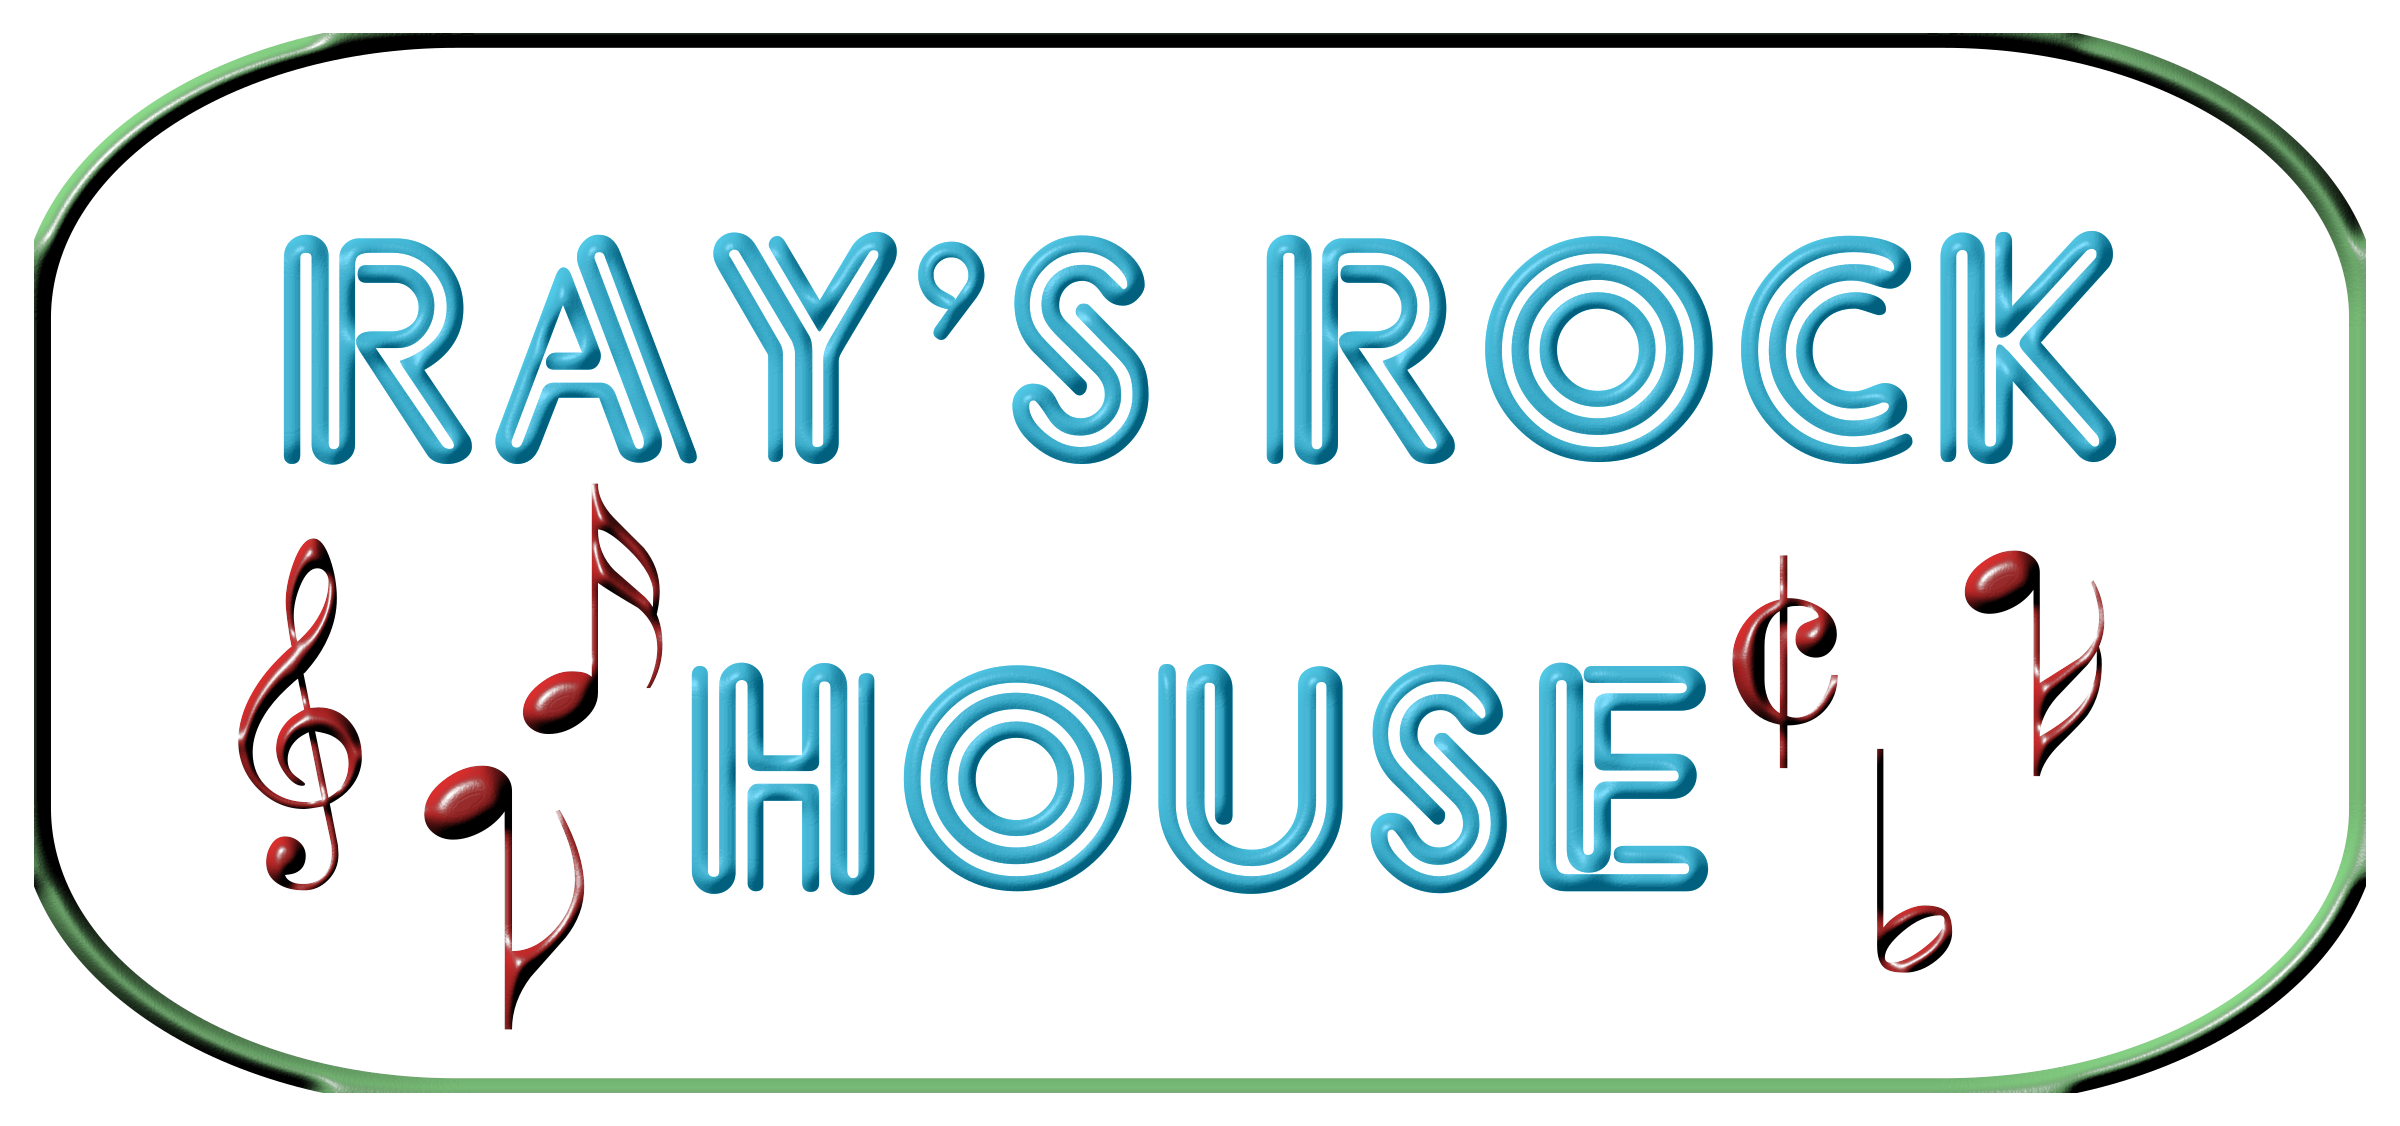 Ray's Rock House by Arvin61r58